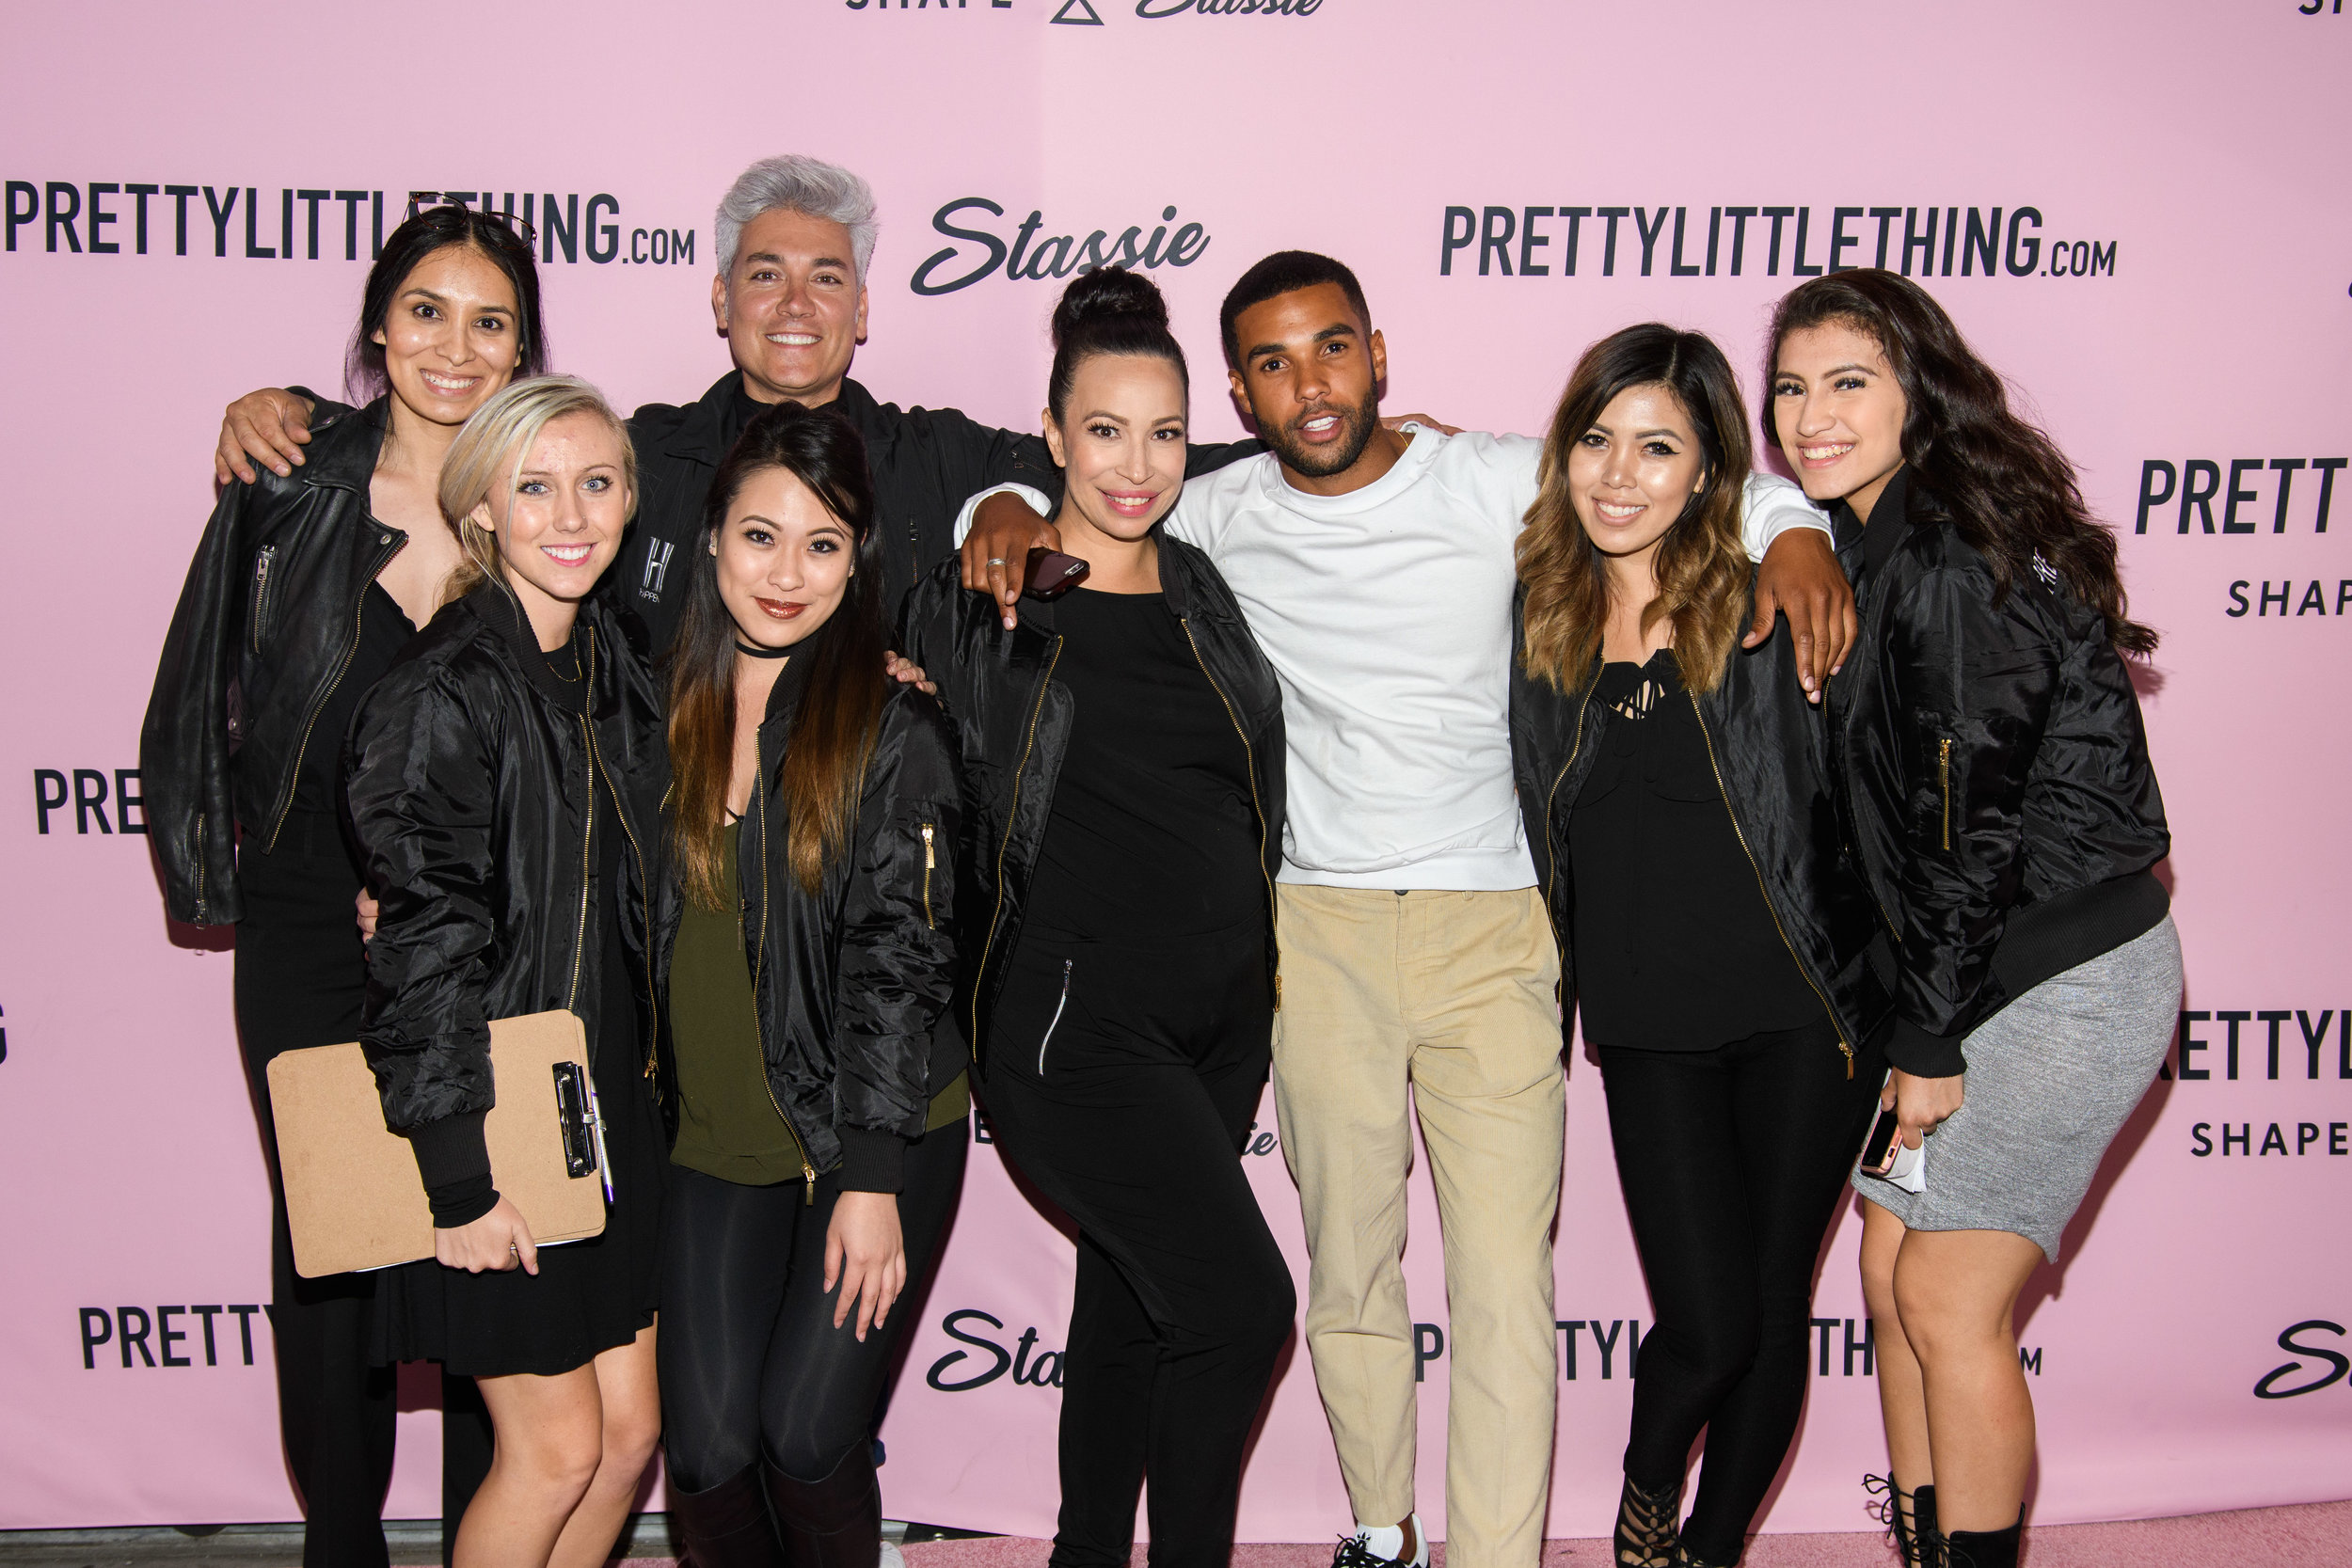 PrettyLittleThing New PLT Shape Collection with Stassie Celebrity Launch Party WOTP team and guests.jpg